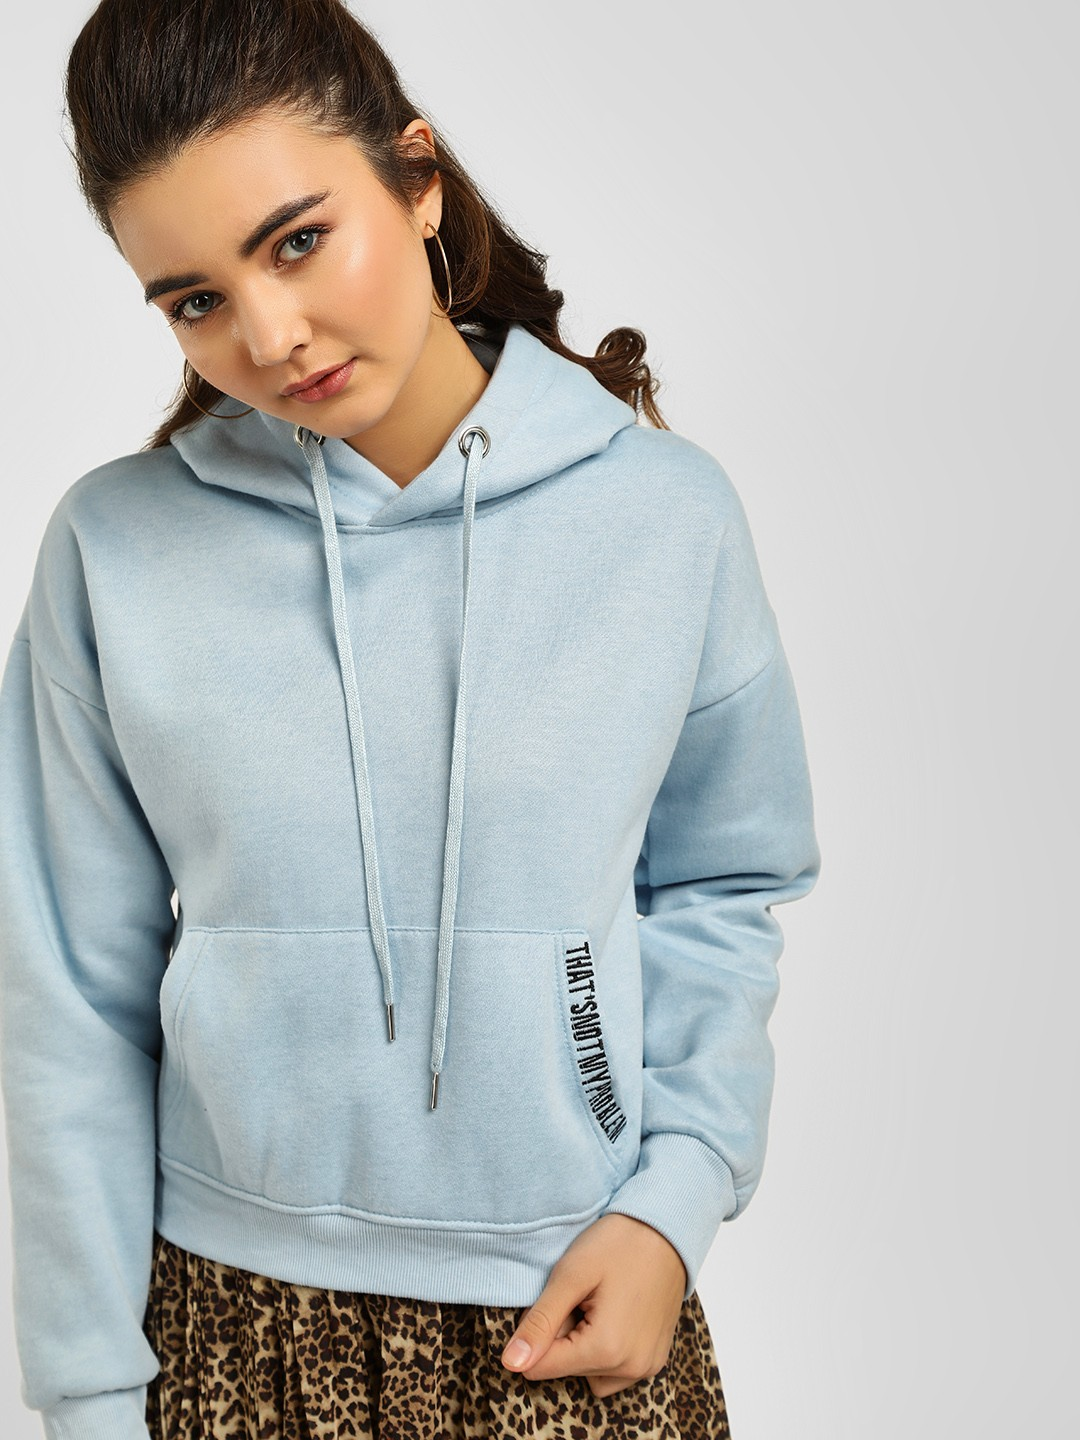 Origami Lily Blue Slogan Detail Hooded Sweatshirt 1